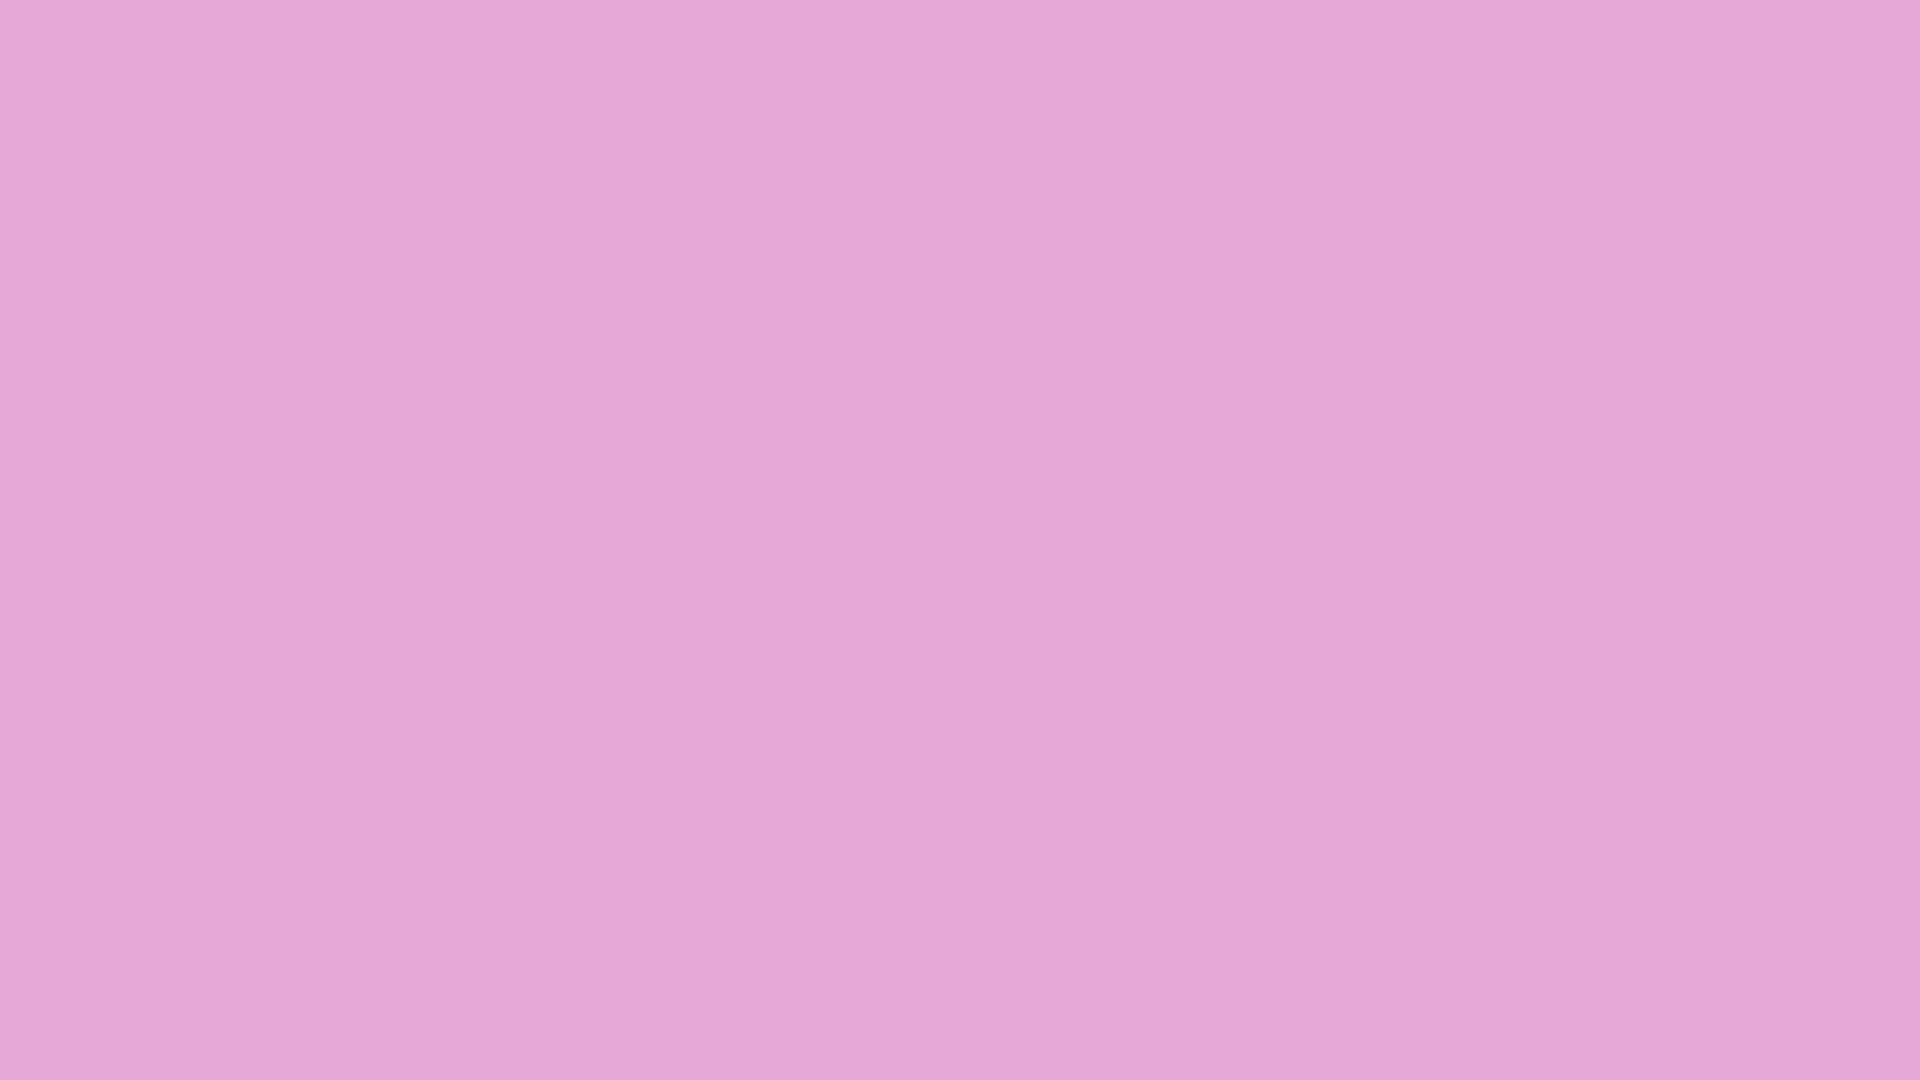 1920x1080 Light Orchid Solid Color Background